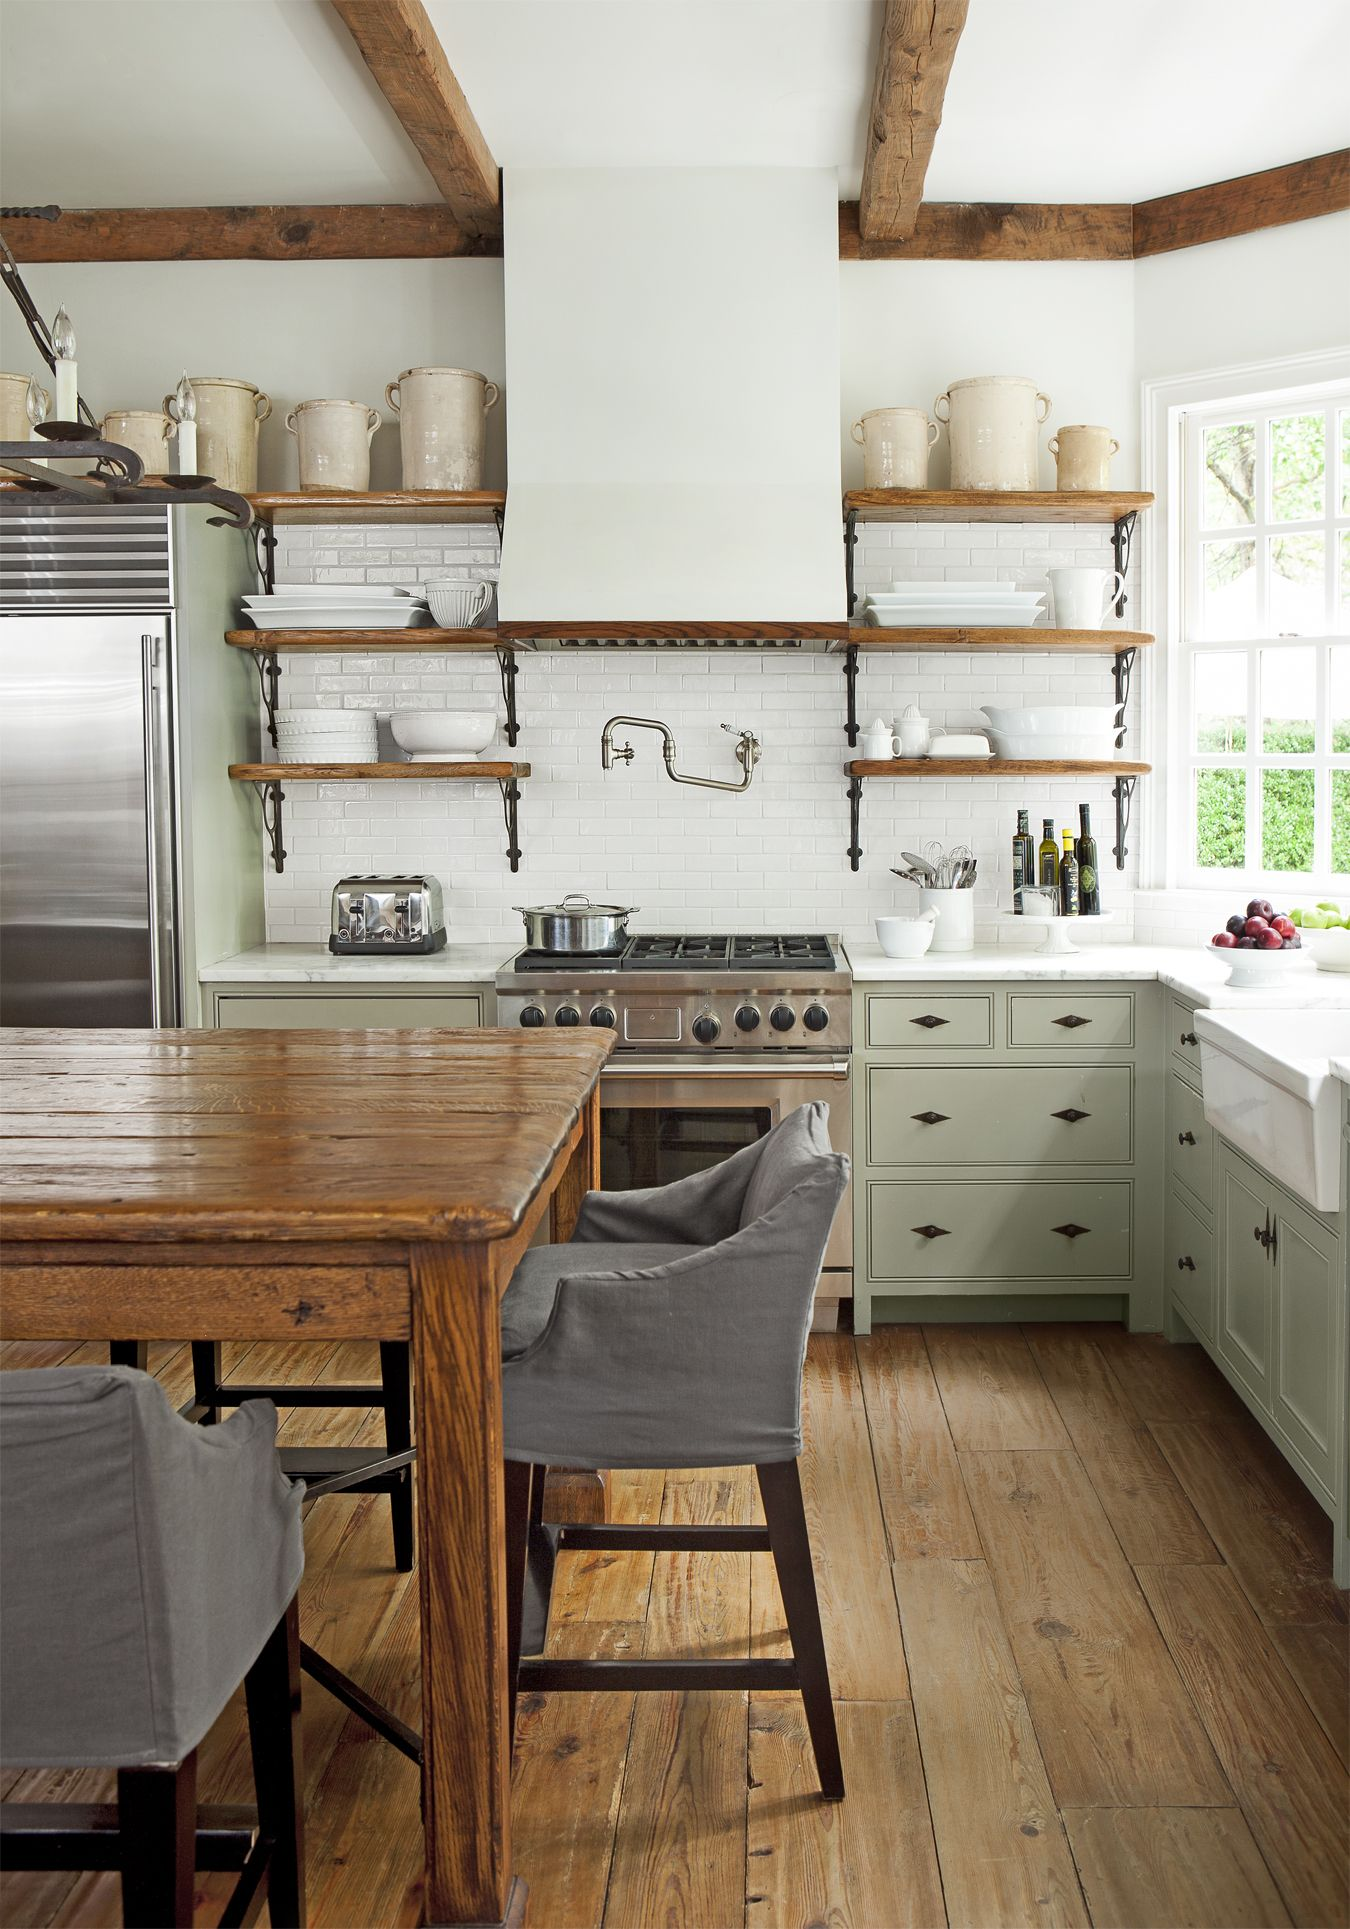 32 Kitchen Trends For 2020 That We Predict Will Be Everywhere Farmhouse Kitchen Inspiration Kitchen Inspirations Kitchen Remodel